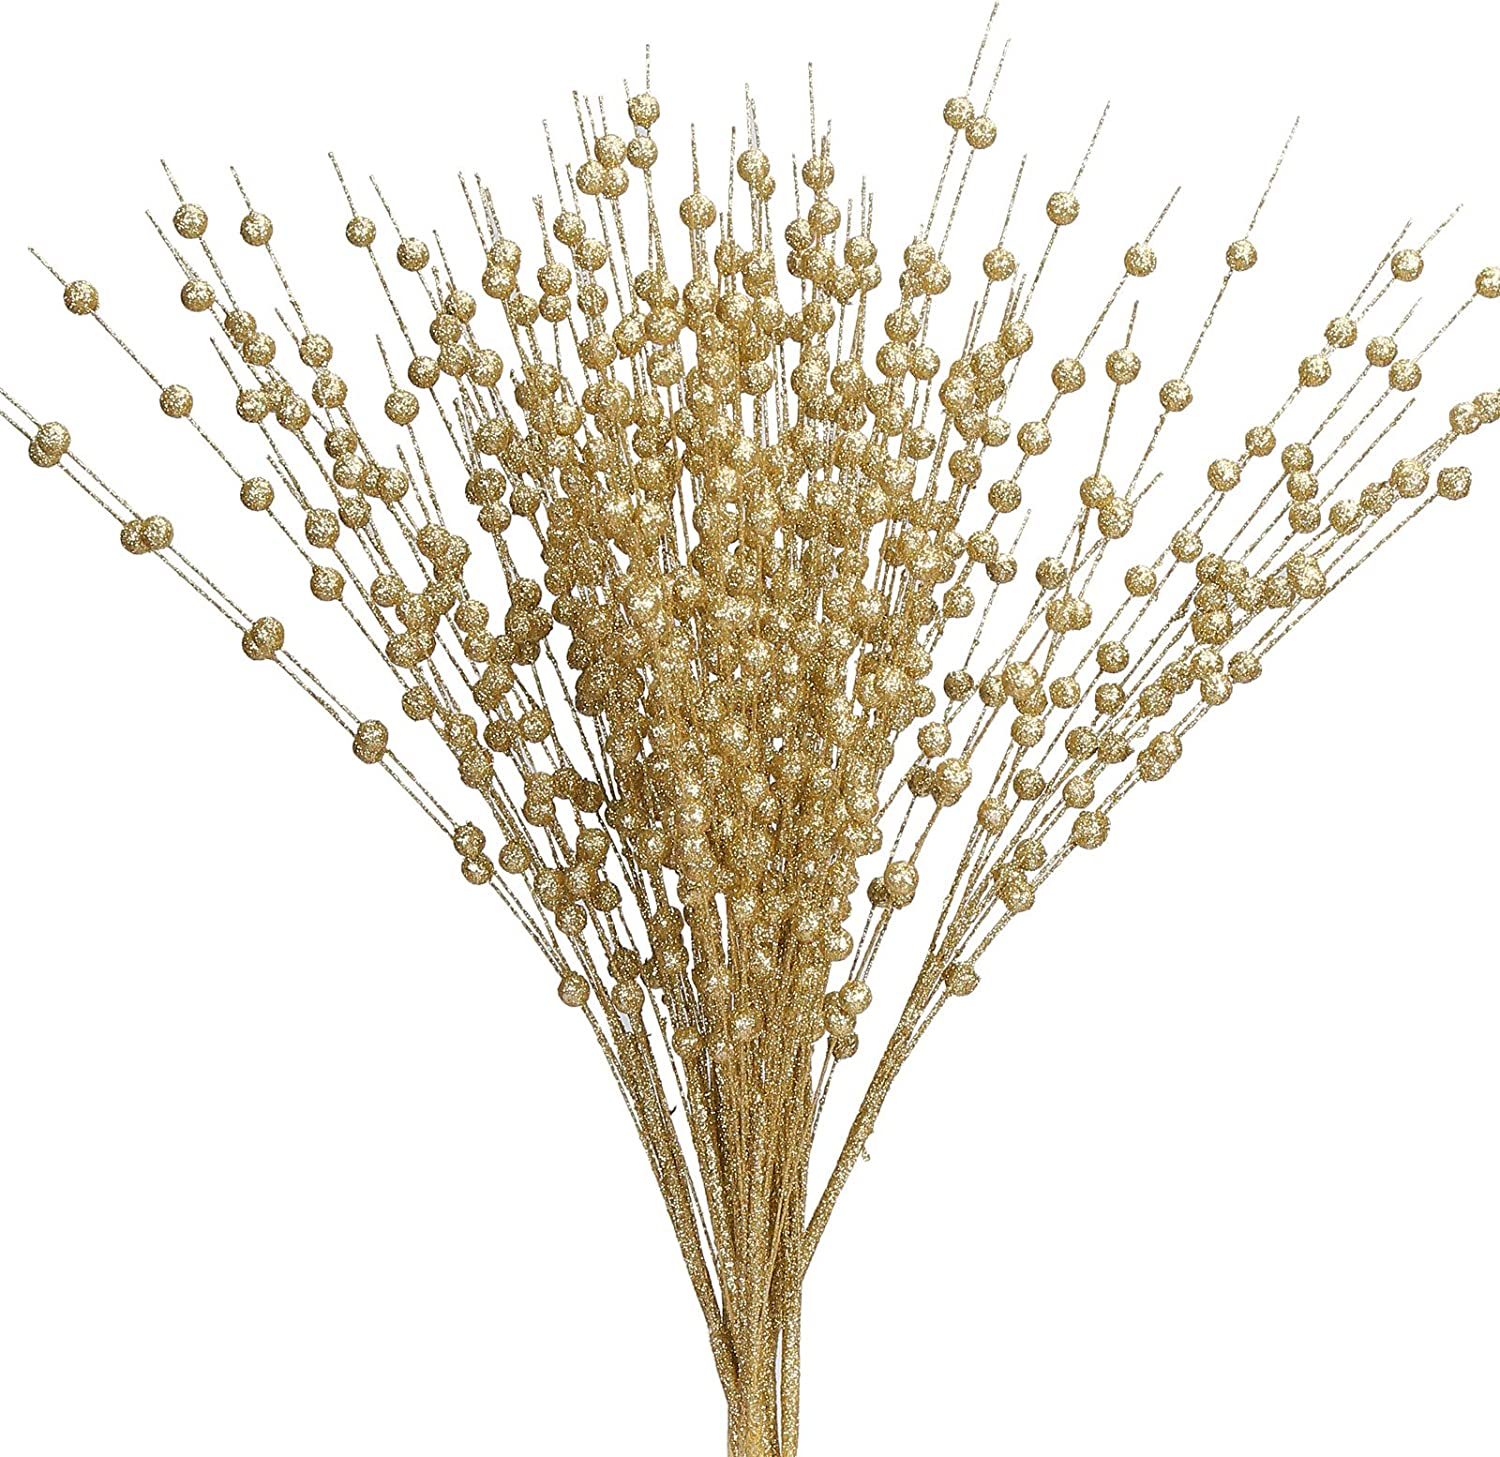 Greentime 10 Pack Golden Artificial Glitter Berry Stem Ornaments 19.7 Inches Fake Christmas Picks Decorative Glitter Sticks for Christmas Tree DIY Wreath Crafts Gift Fireplace Holiday Home Decor